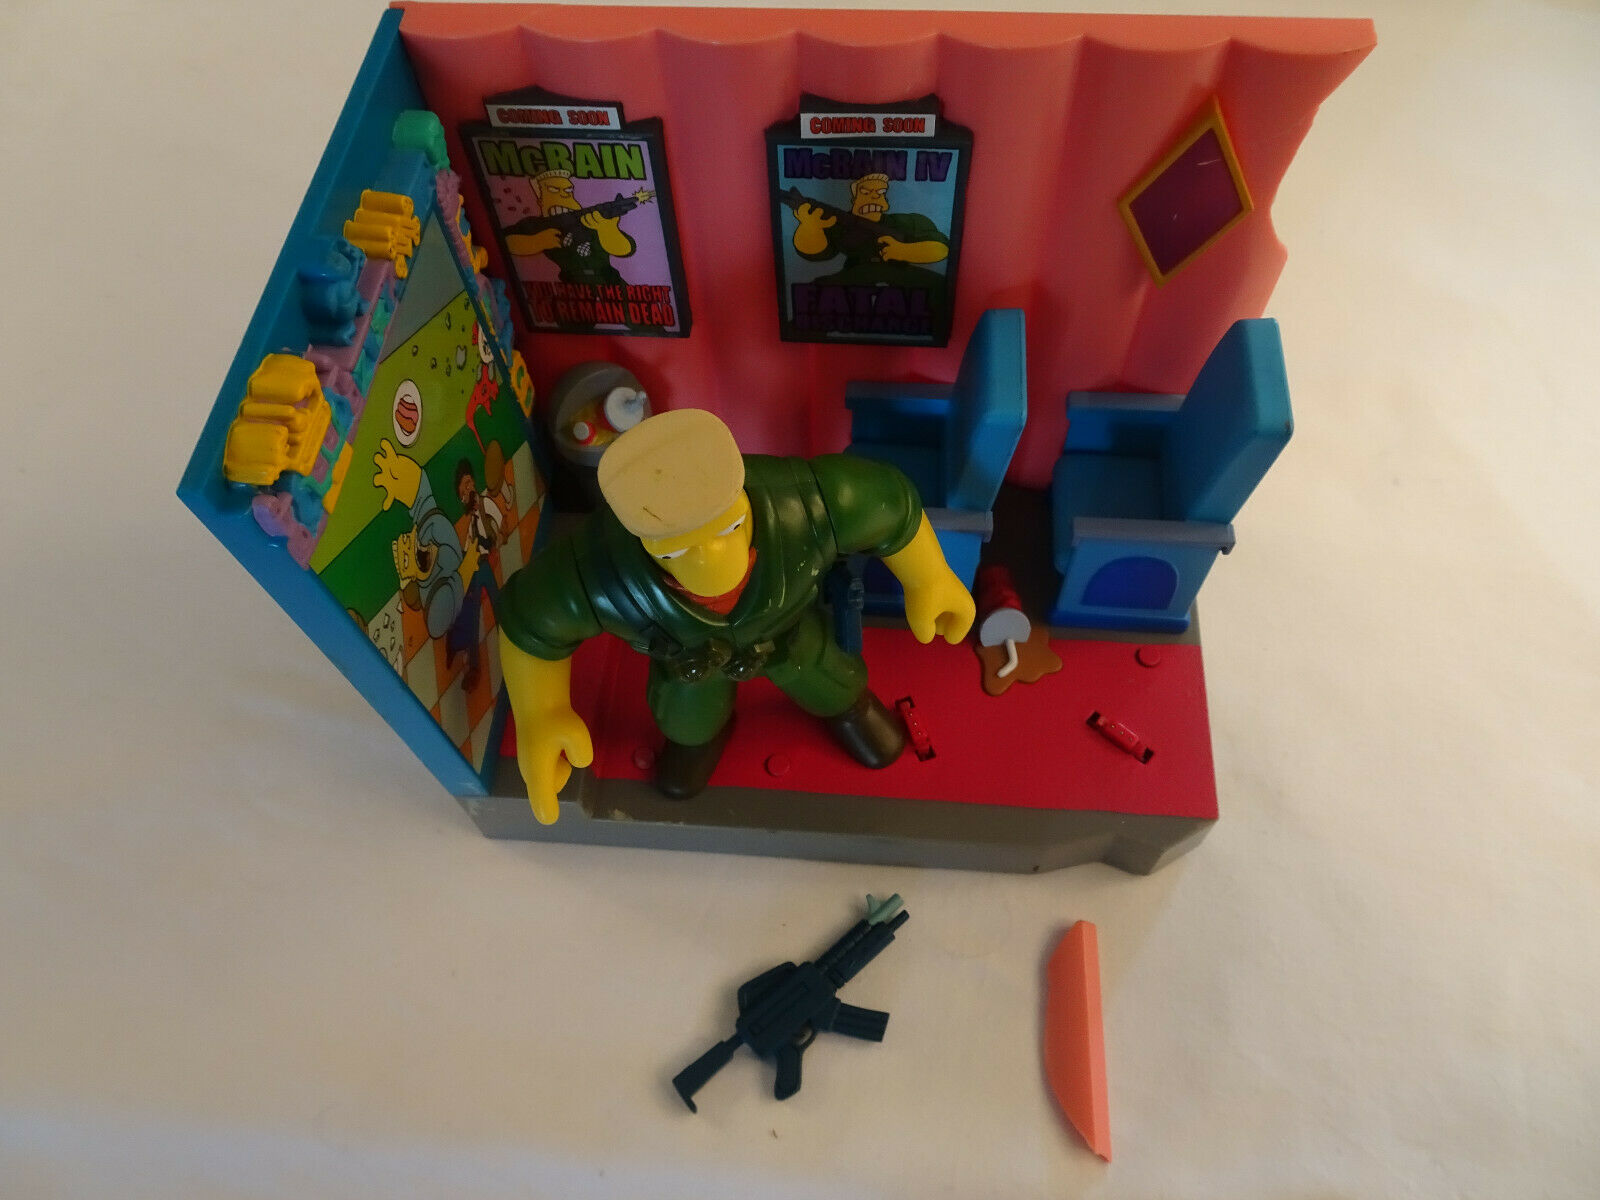 The Simpsons World of Springfield Playset Série 13 Le Cinéma 2002 Playmates